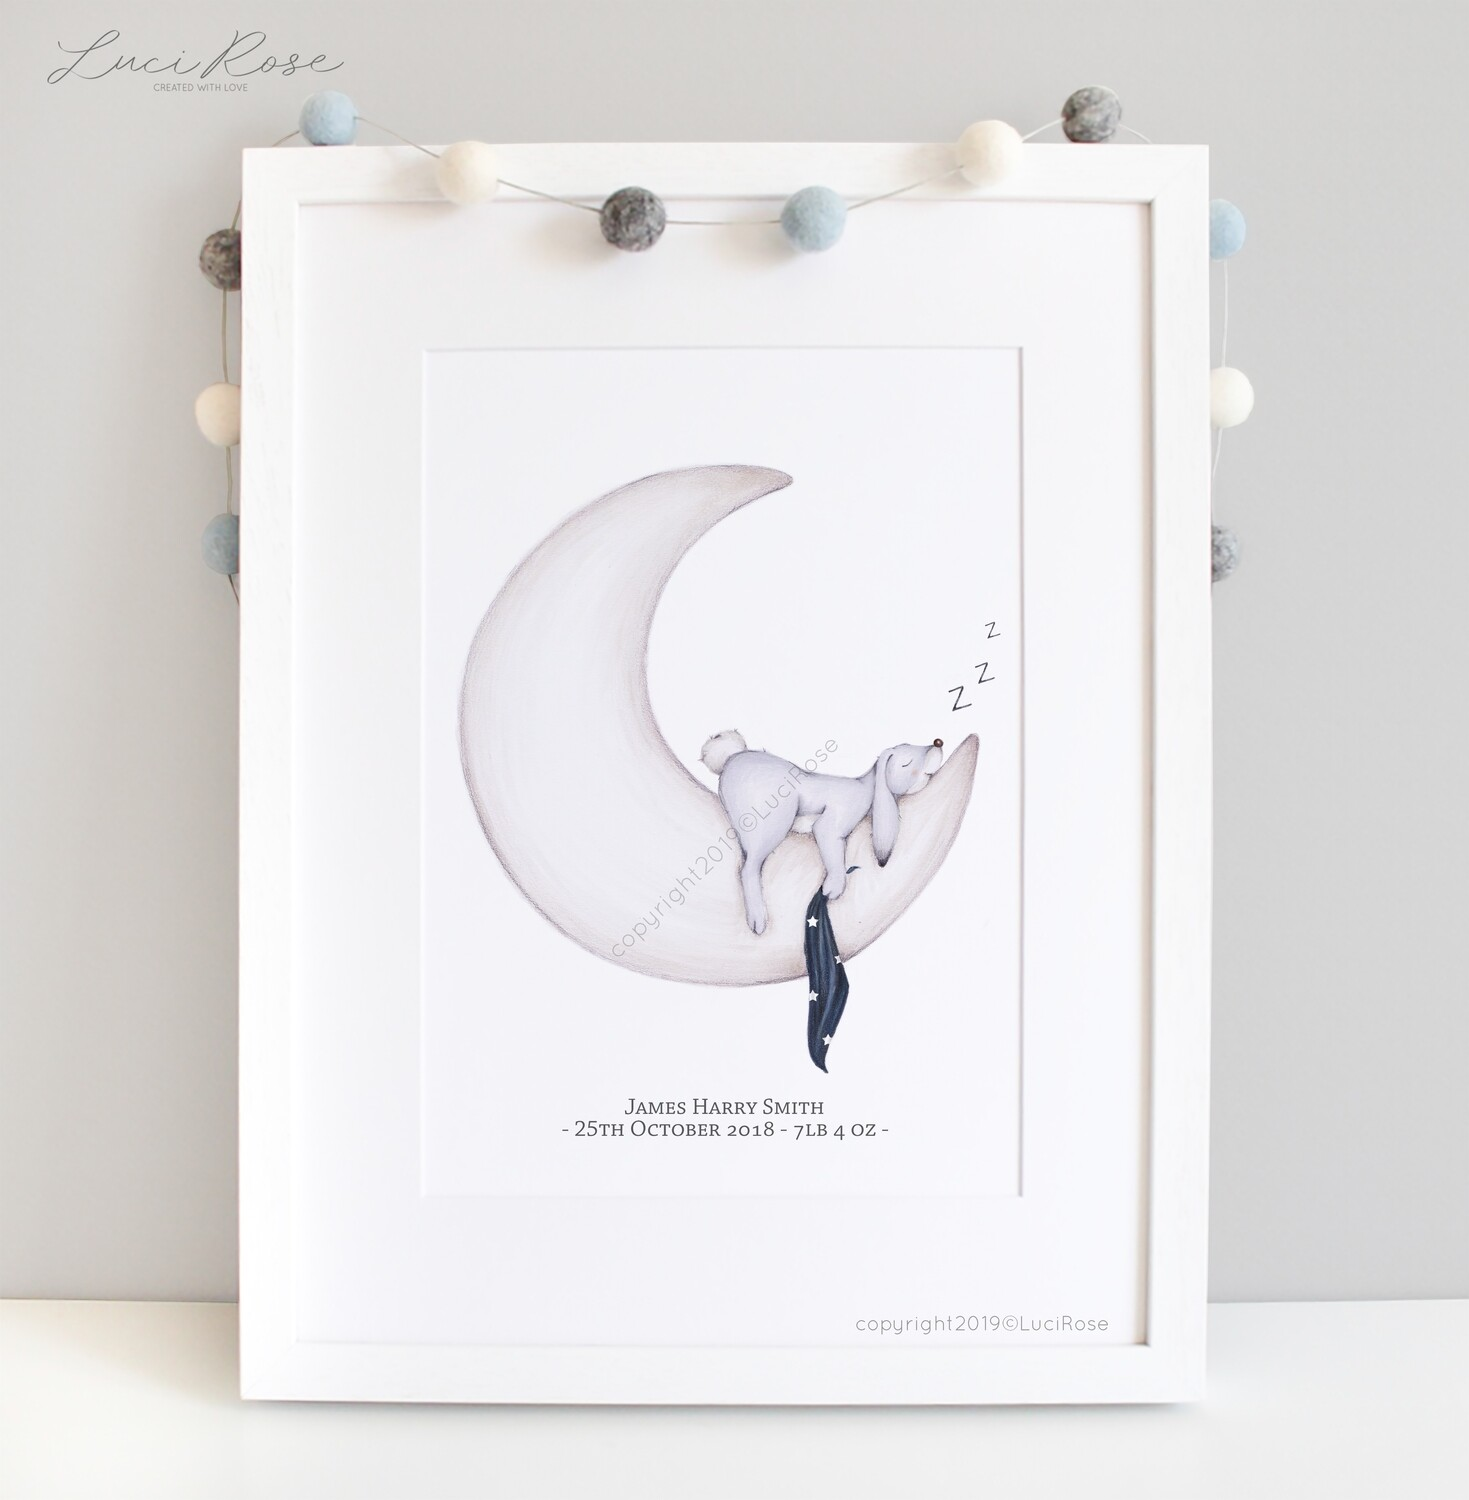 Night night, sleep tight sleeping bunny Children's Nursery Art